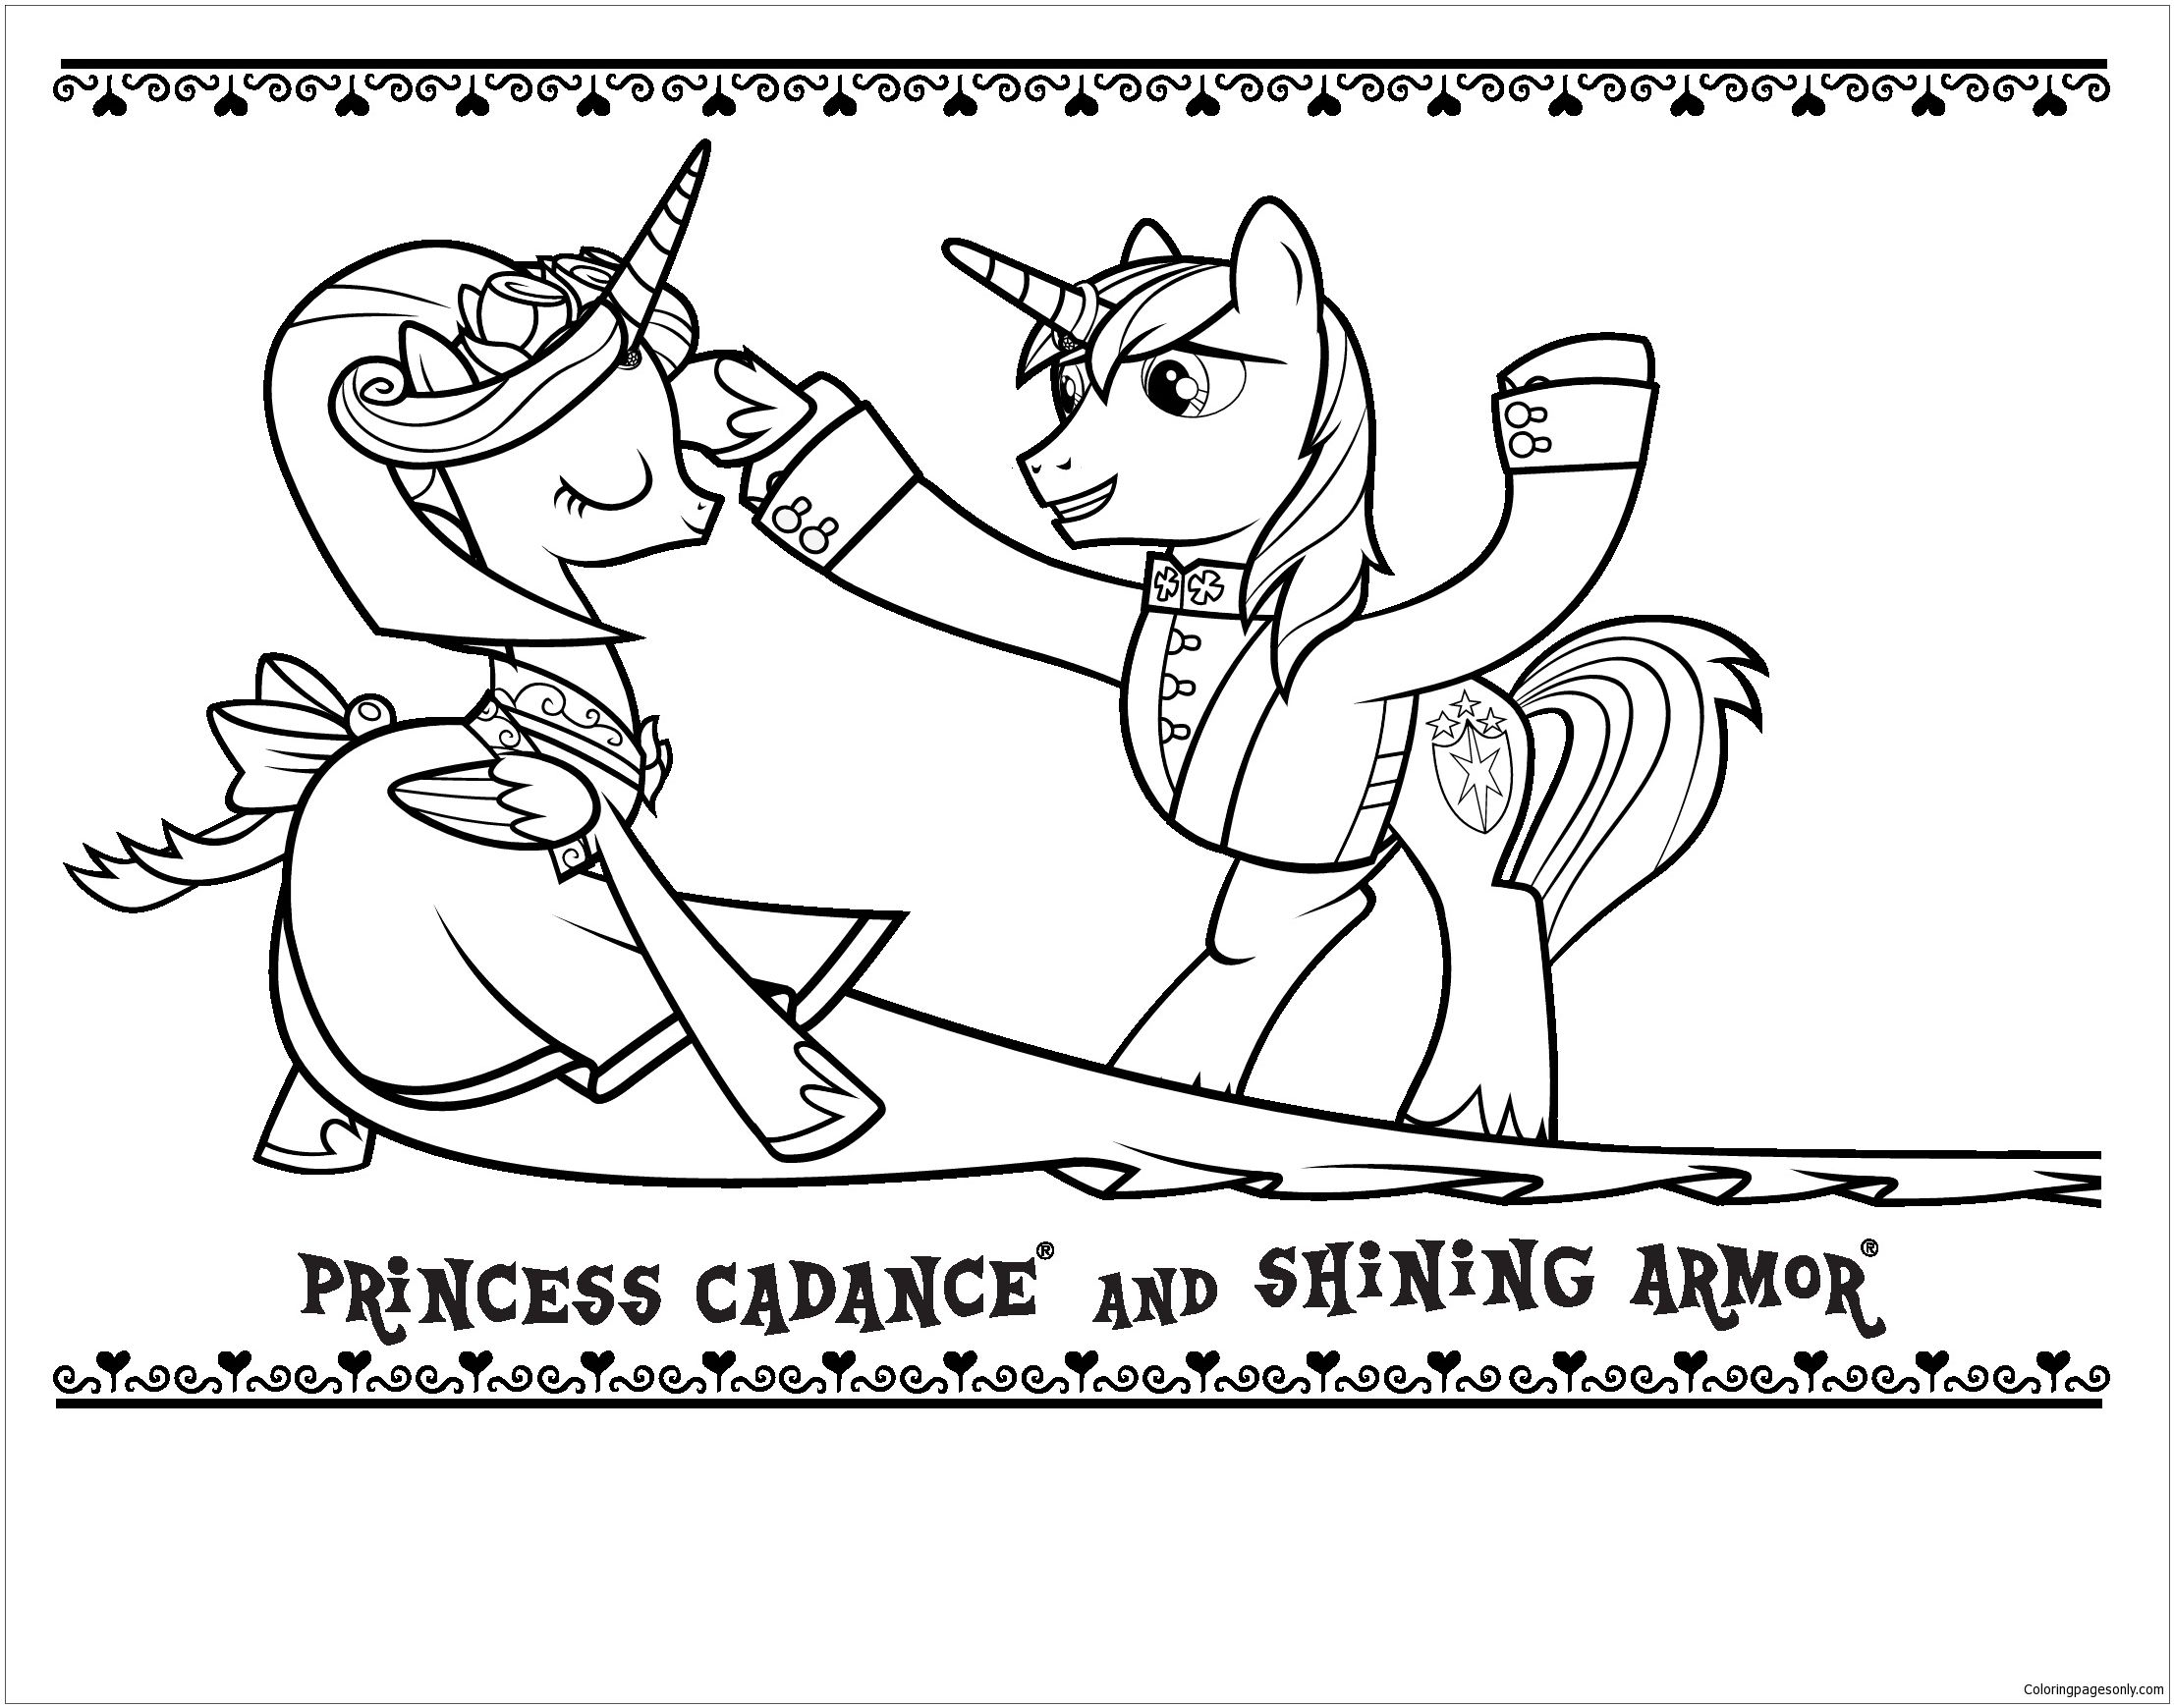 Pin by Coloring Pages on My Little Pony Coloring Pages | Pinterest ...